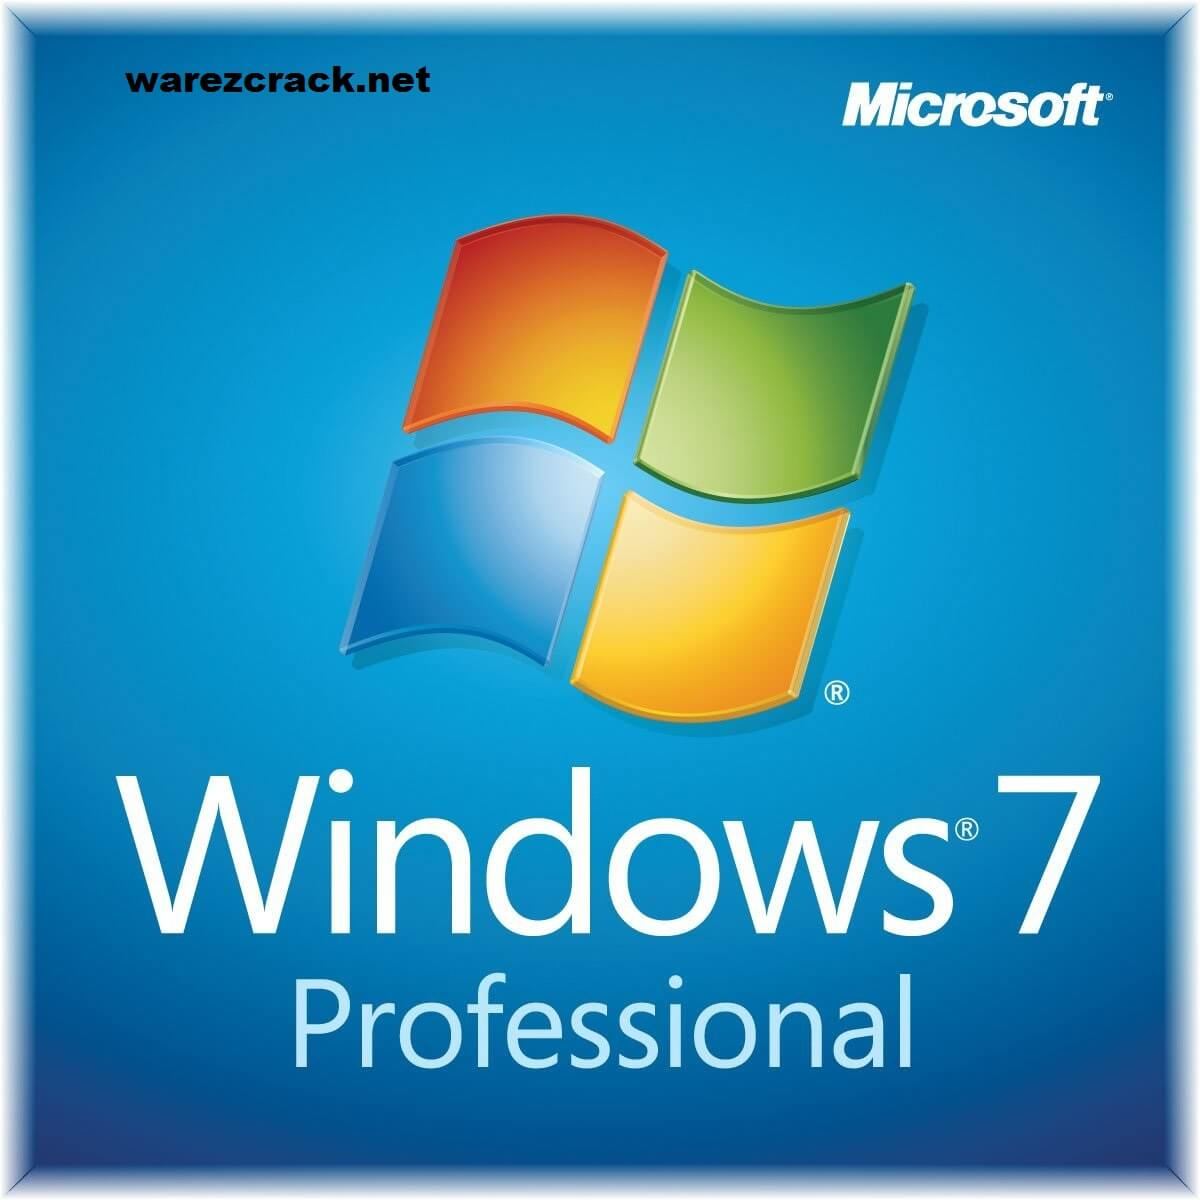 windows 7 ultimate 64 bit cracked torrent